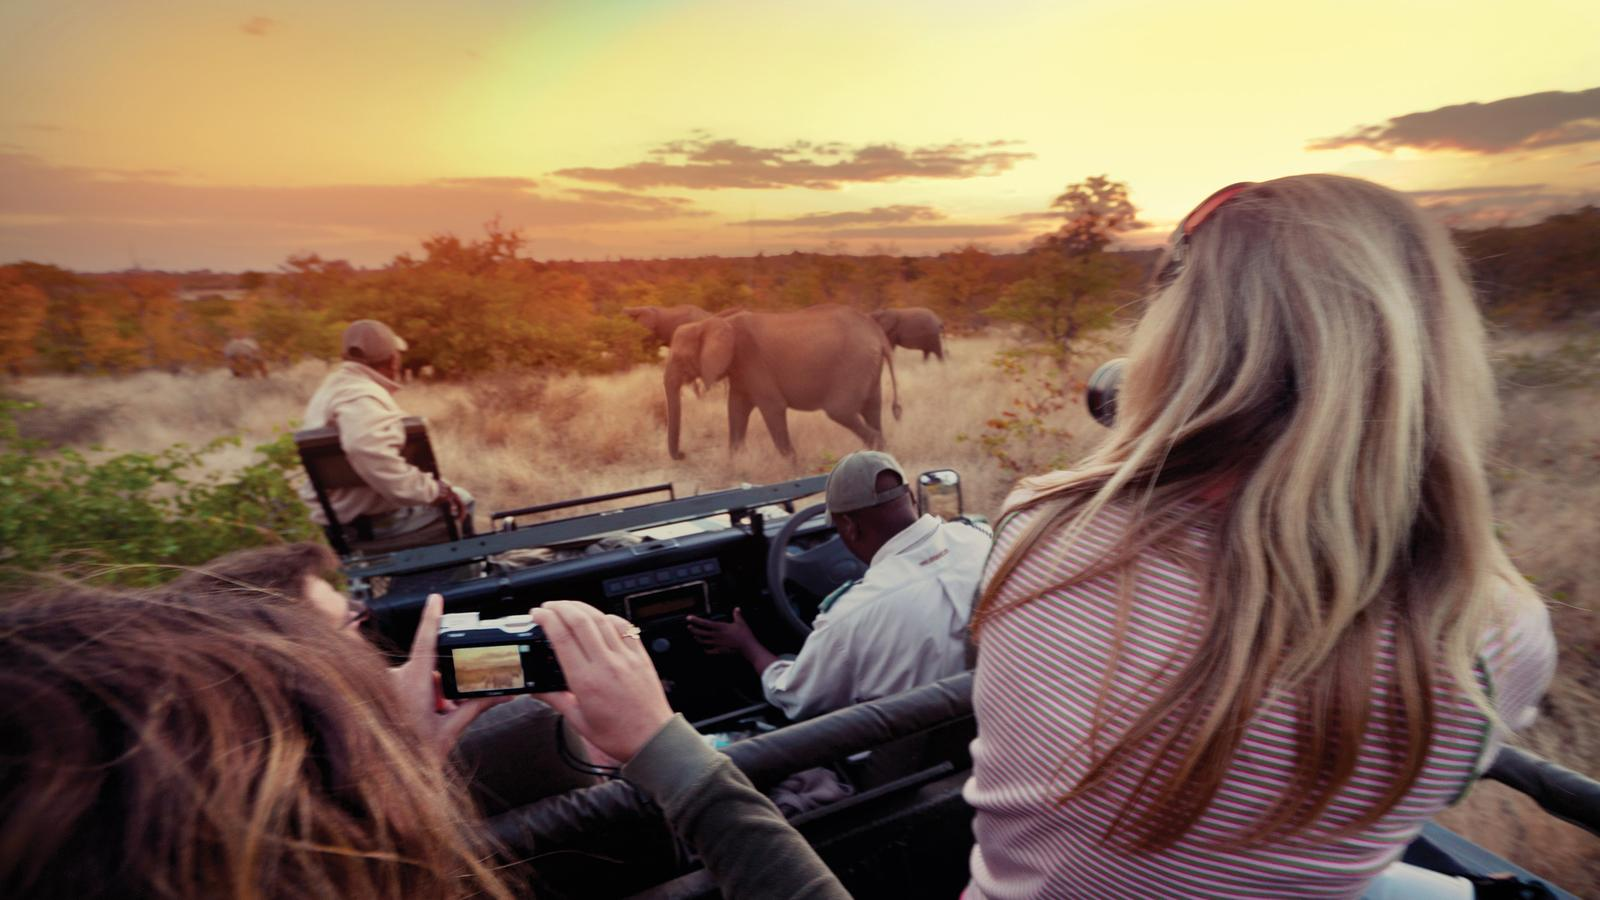 Explore Kruger National Park